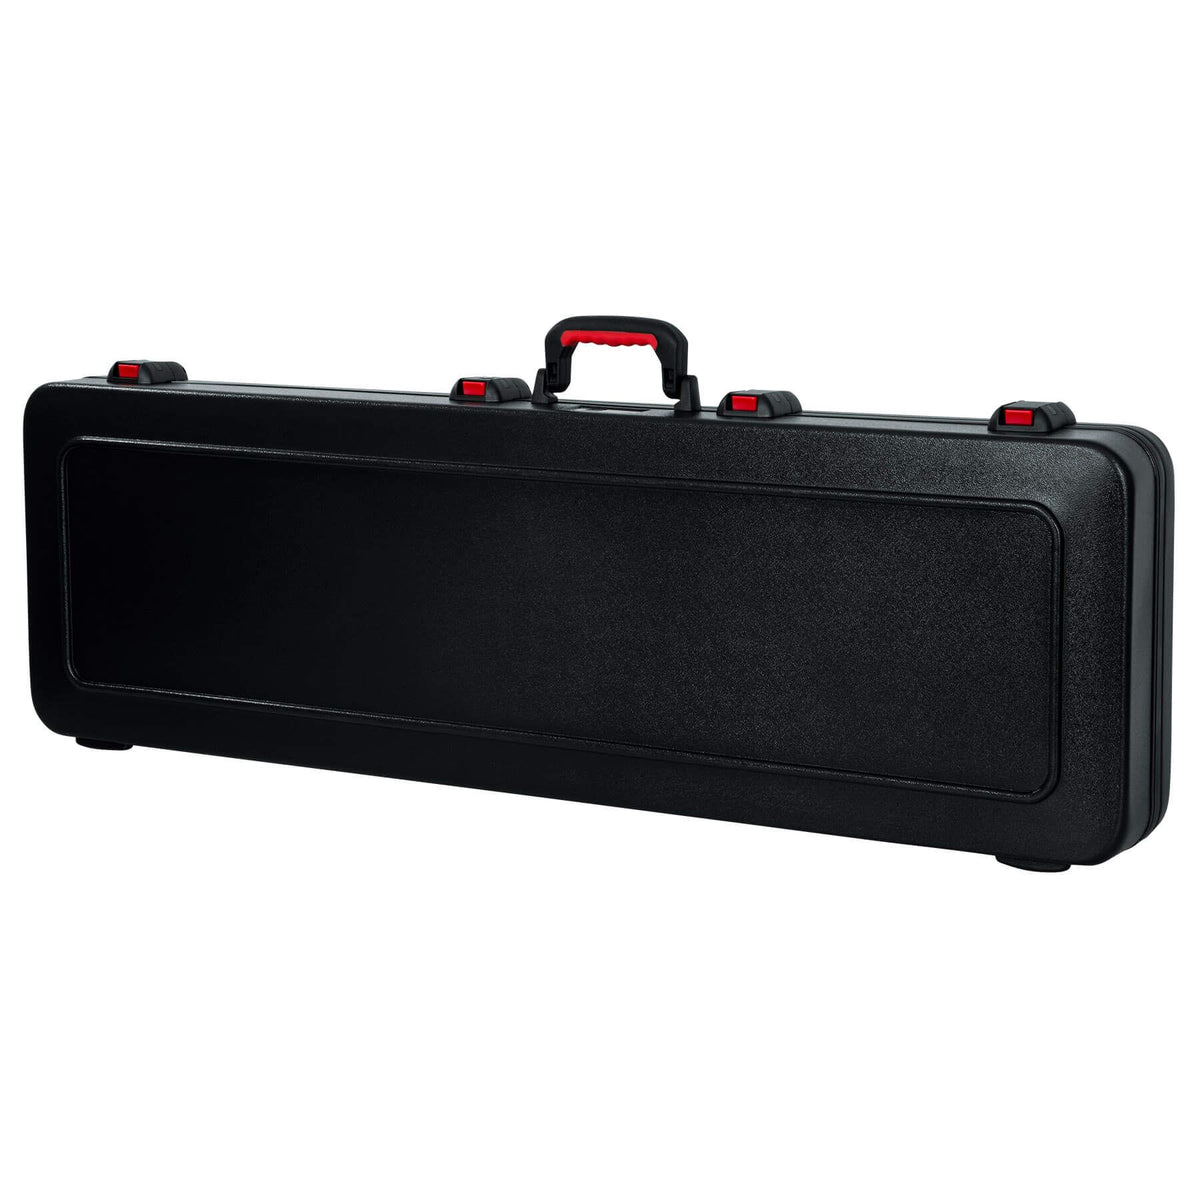 Gator ATA Bass Guitar Case fits Fender '64 Jazz Bass Closet Classic